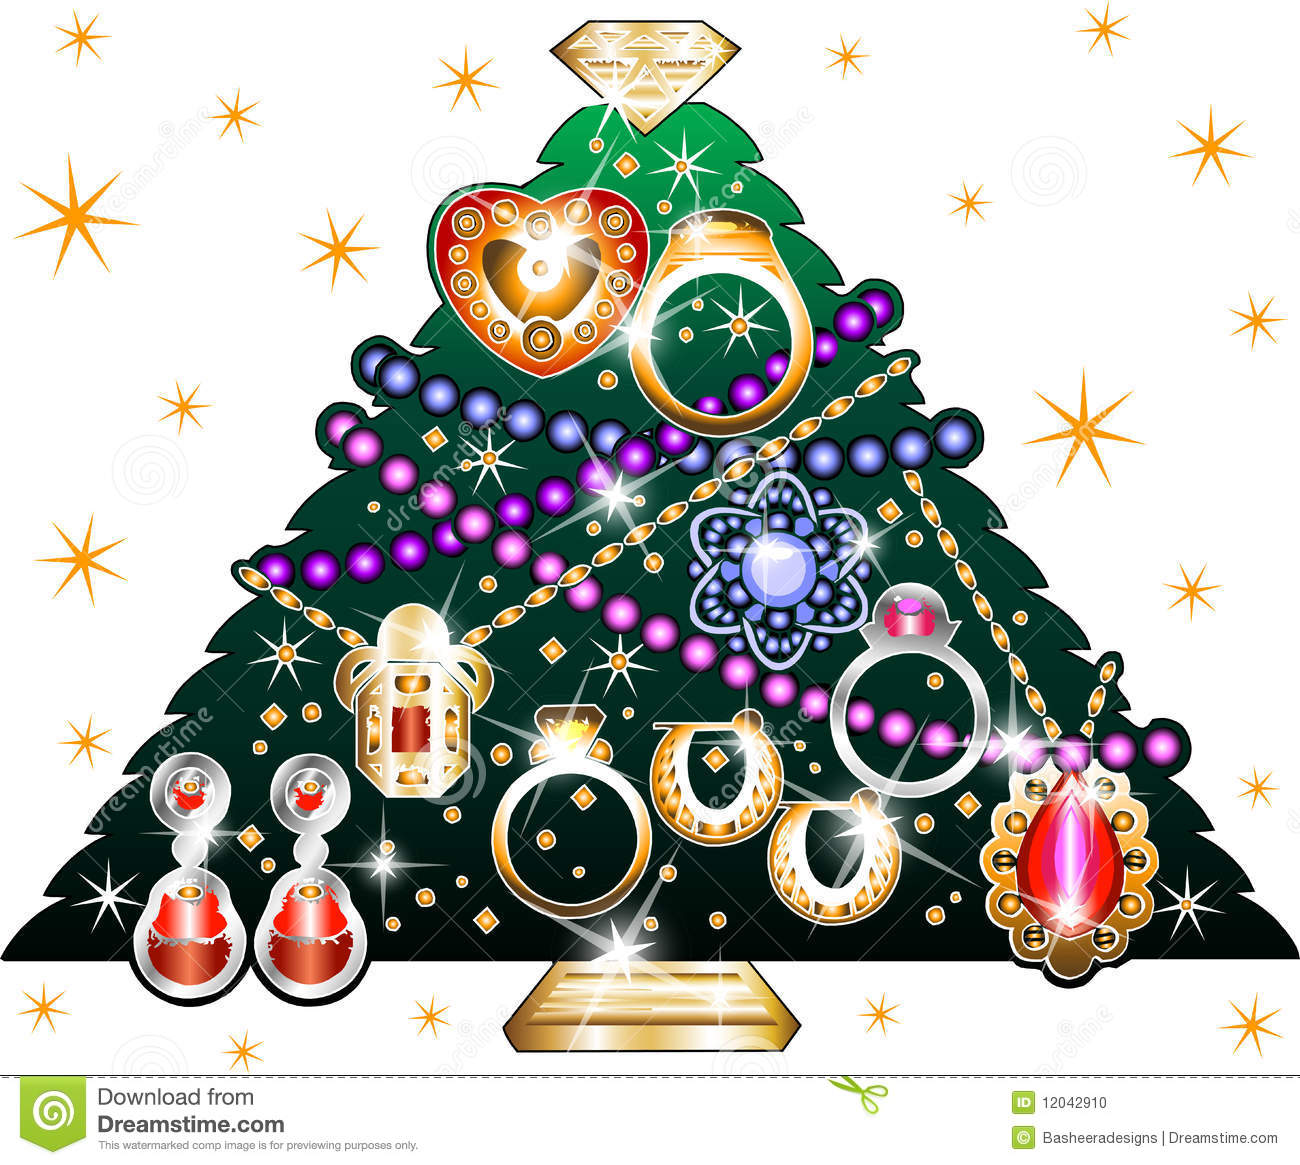 Jewelry Christmas Tree 3 stock vector. Illustration of beads - 12042910